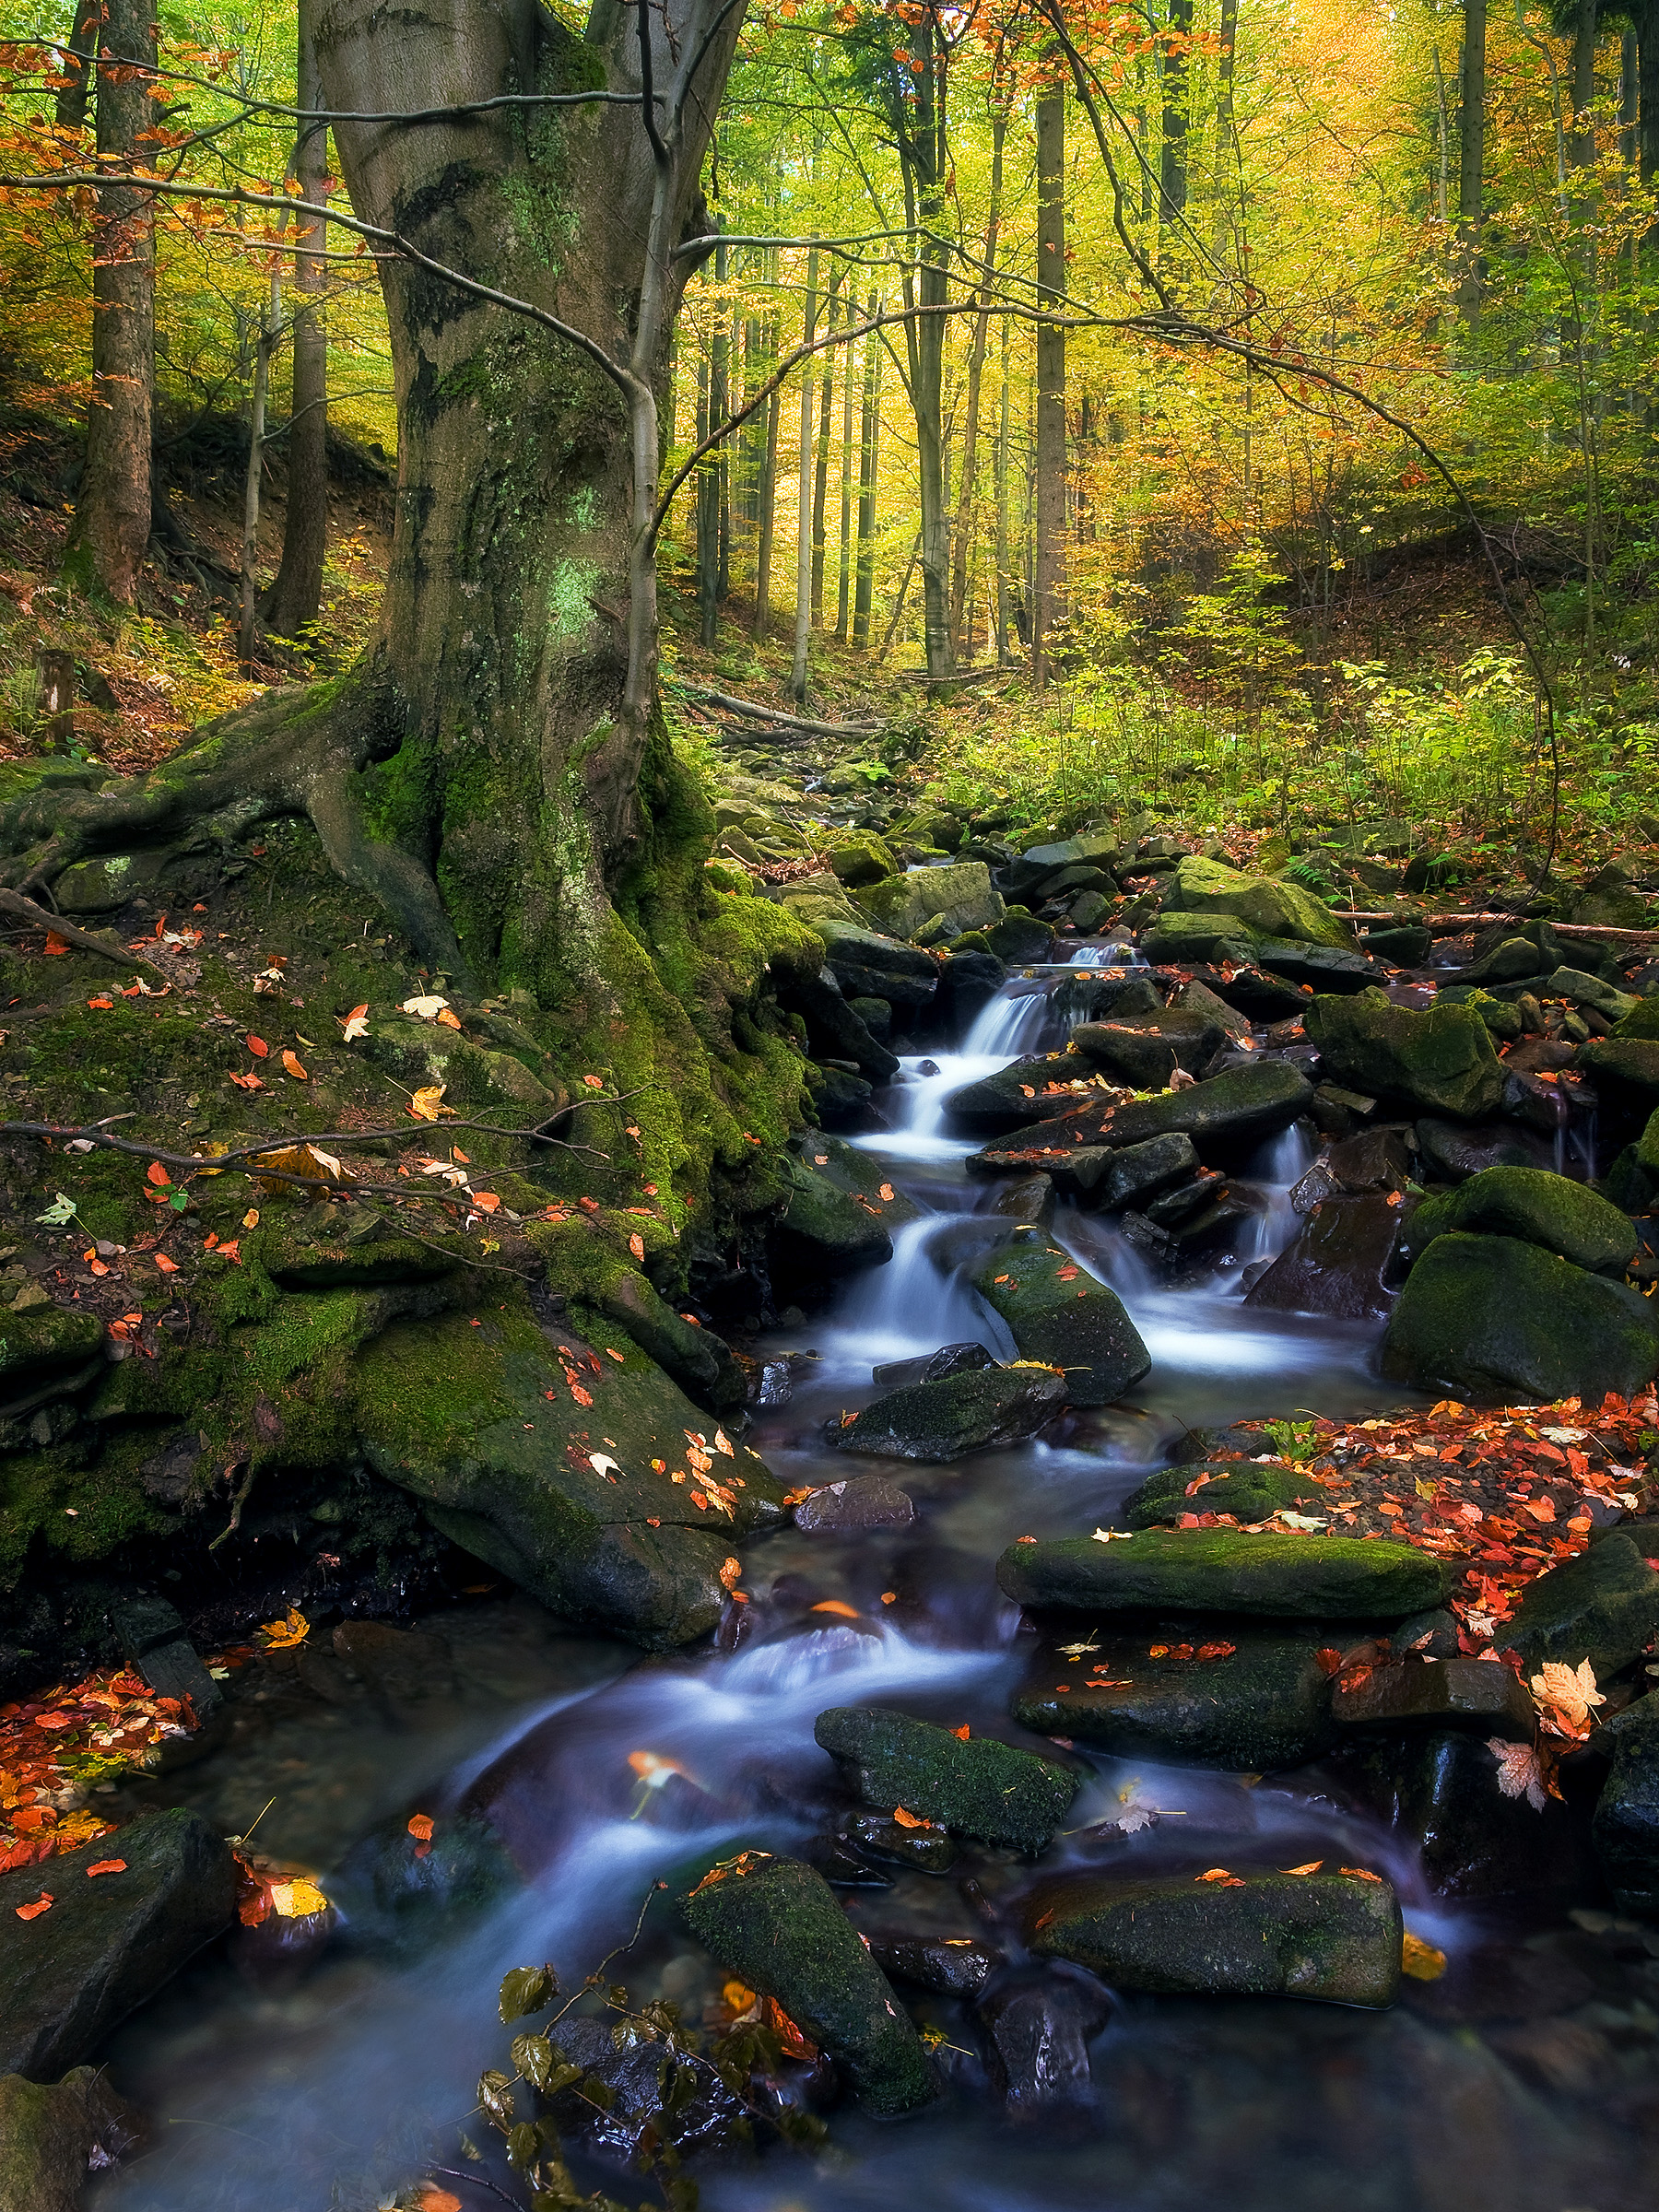 Autumn Forest with Waterfalls